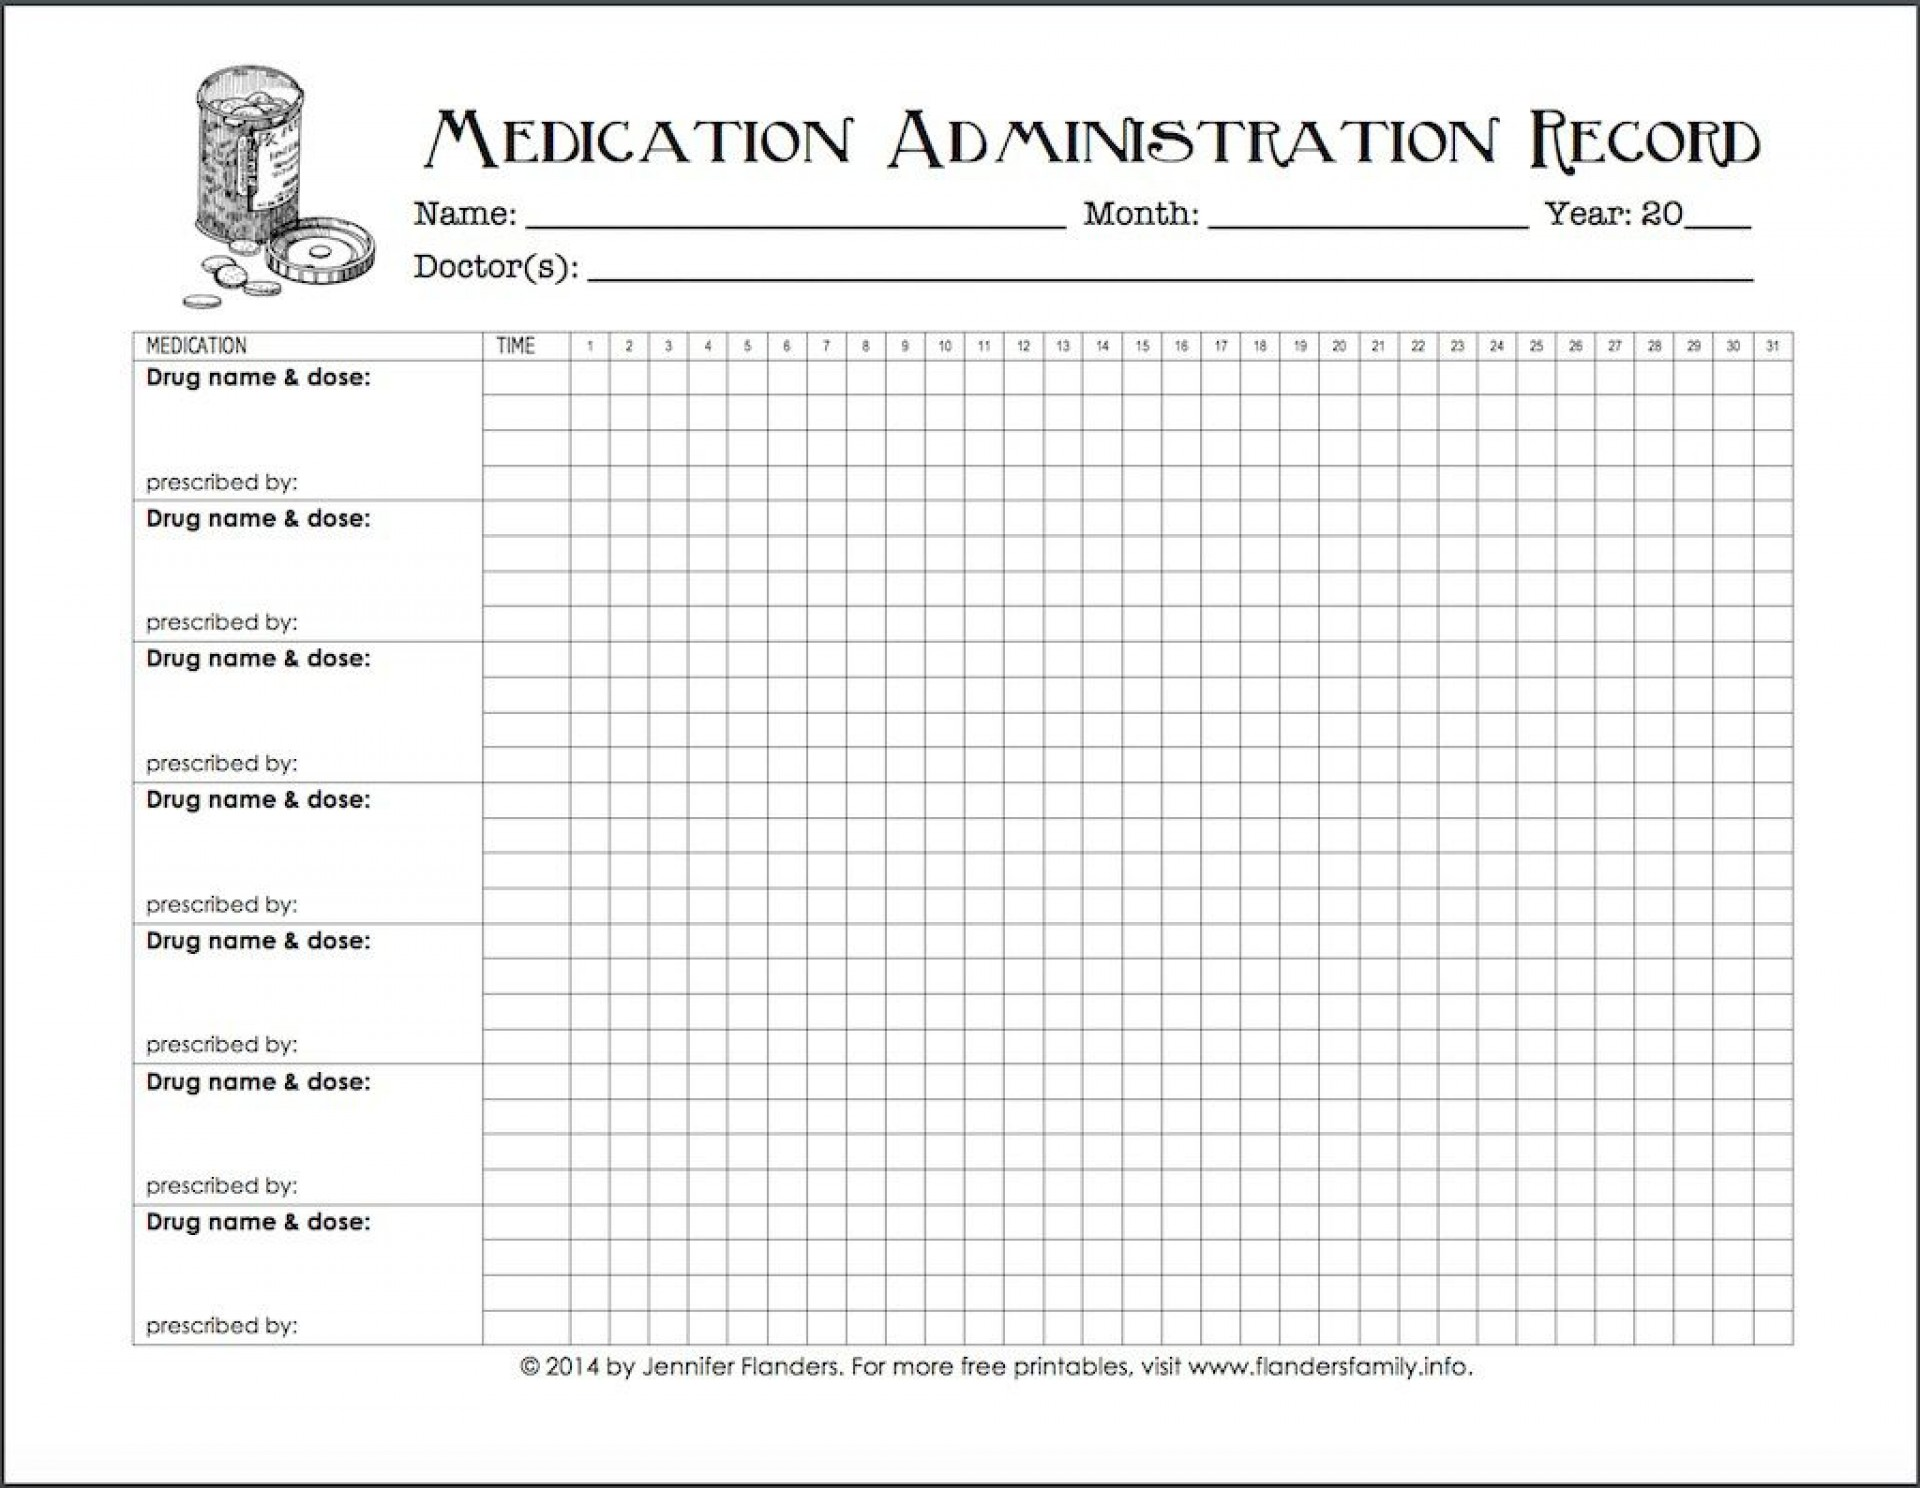 007 Top Medication Administration Record Template Example  Download For Home Use1920